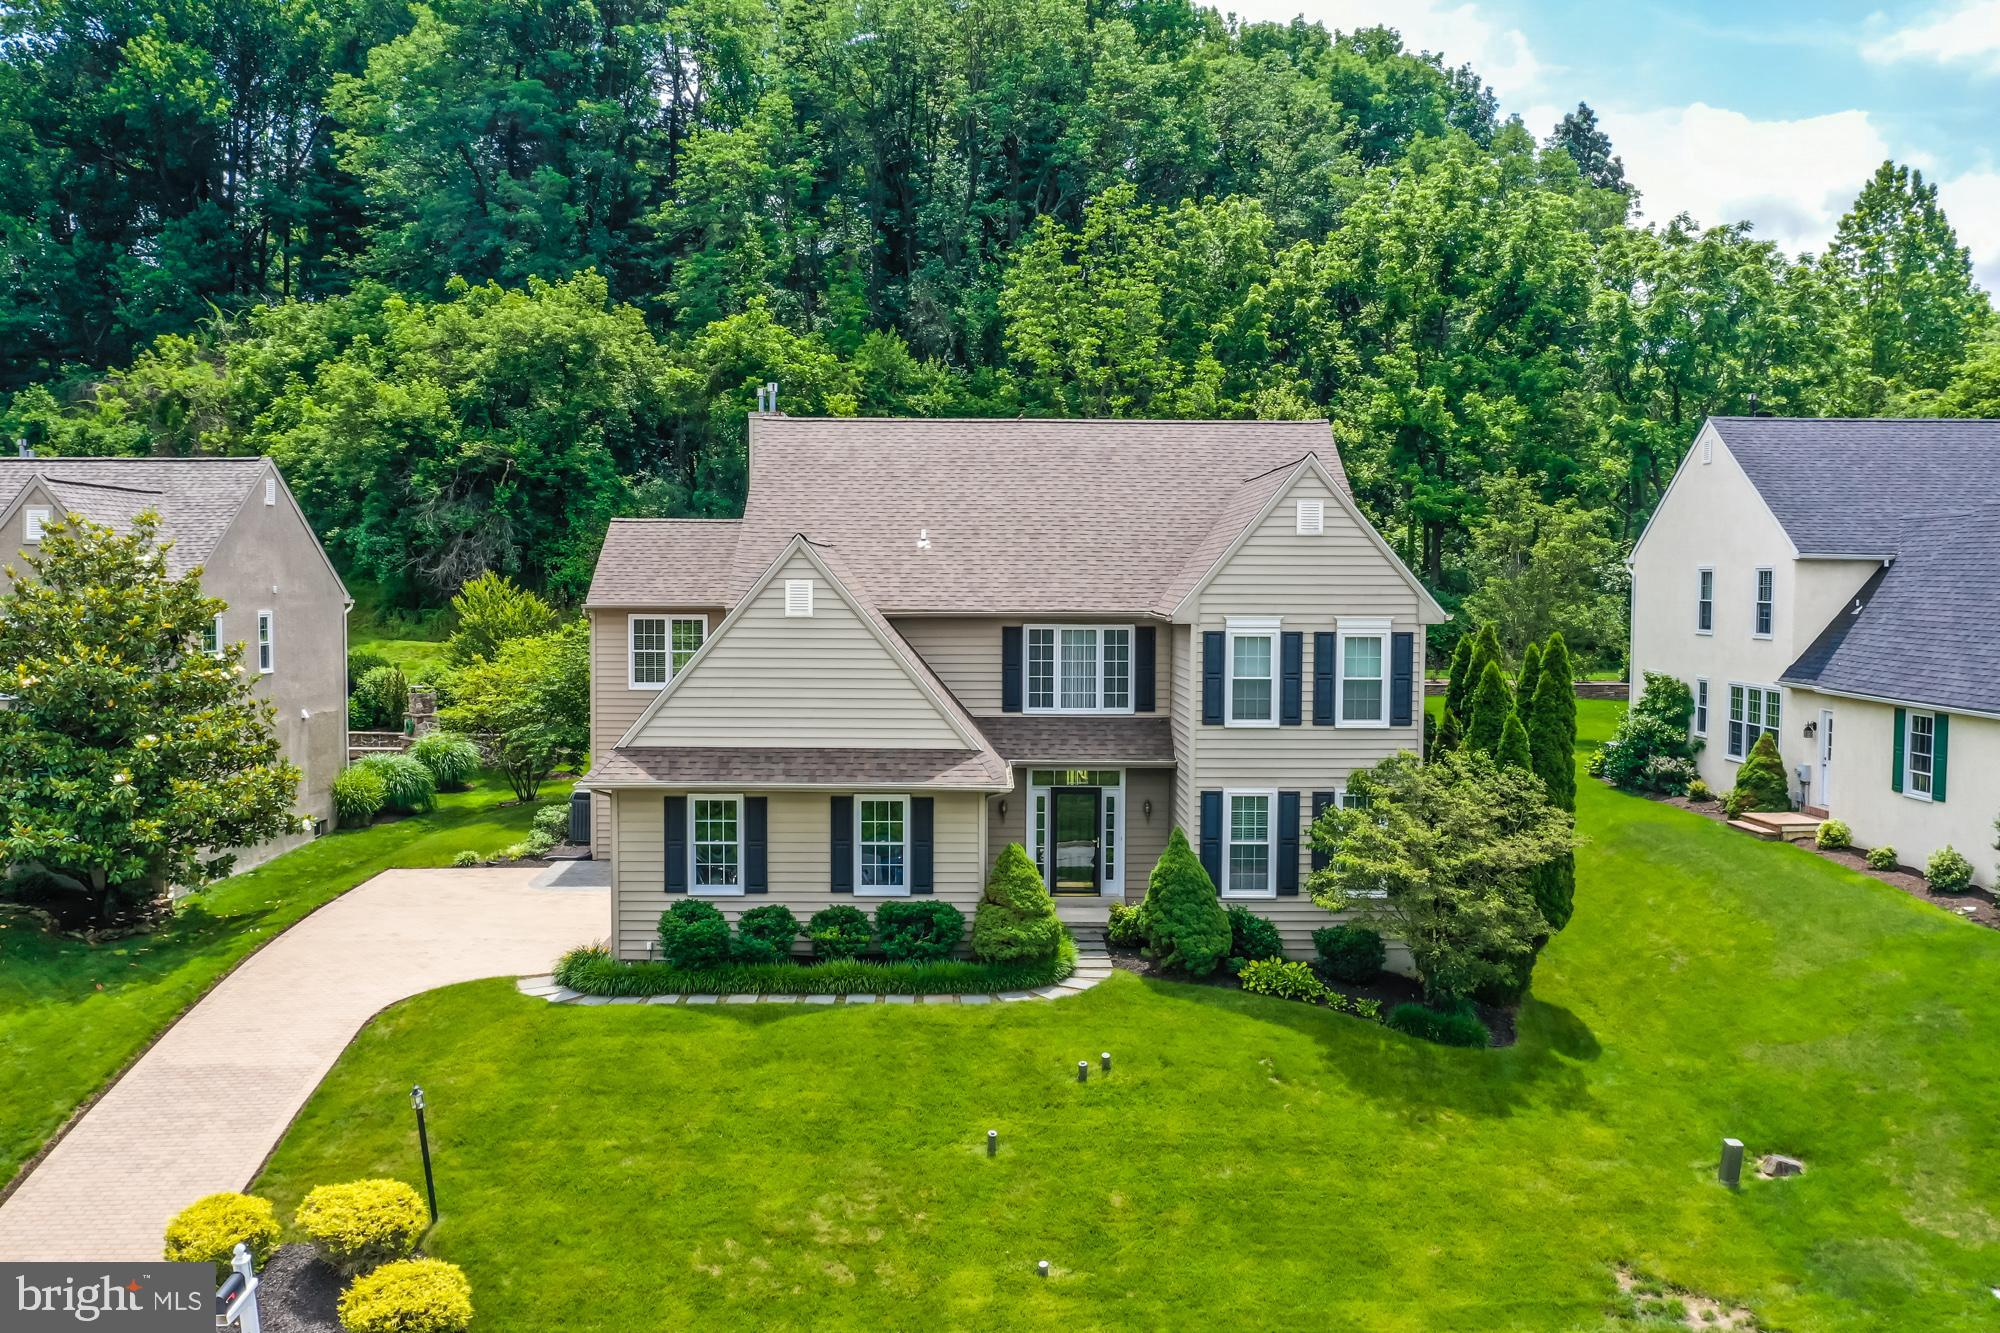 A truly move-in ready, elegant 4 Bedroom, 3.5 Bathroom home with a fabulous finished lower level in the sought after neighborhood of Idlewilde.  The beautiful paver driveway welcomes you to the front porch and invites you inside to an open floor plan with gleaming hardwood floors.  The Living and Dining Room that join make perfect space for flexible entertaining.  An updated gourmet eat-in Kitchen that features custom built cabinets, a granite island and new stainless appliances  with sliding doors to the private Deck. The Kitchen is open to the Great Room with a vaulted ceilng, sunburst window and gas fireplace that offers entry to an Office/Study.  Garage access, Mudroom with Laundry and Powder Room complete the main level.  Up either the front or back staircase to the spacious ensuite Primary Bedroom with multiple walk-in closets, separate Sitting Room plus handsome updated Bathroom with soaking tub, glass surround shower, double bowl vanity, and water closet.  Three large additional bedrooms and a full, hall Bathroom are located on the second floor.  The lower level is finished with an Entertainment area plus a state of the art Media Room (with all equipment and furniture included!) along with a full Bathroom, separate Office and unfinished storage area.  Idlewilde is an easy walk to West Chester County Club, a few blocks to downtown West Chester, and convenient to major highways and shopping.  Located in award winning West Chester school district this is the home you have been waiting for.   A brand new roof, freshly painted interior and new kitchen appliances still under warranty, all the work has been done, just move in and enjoy!